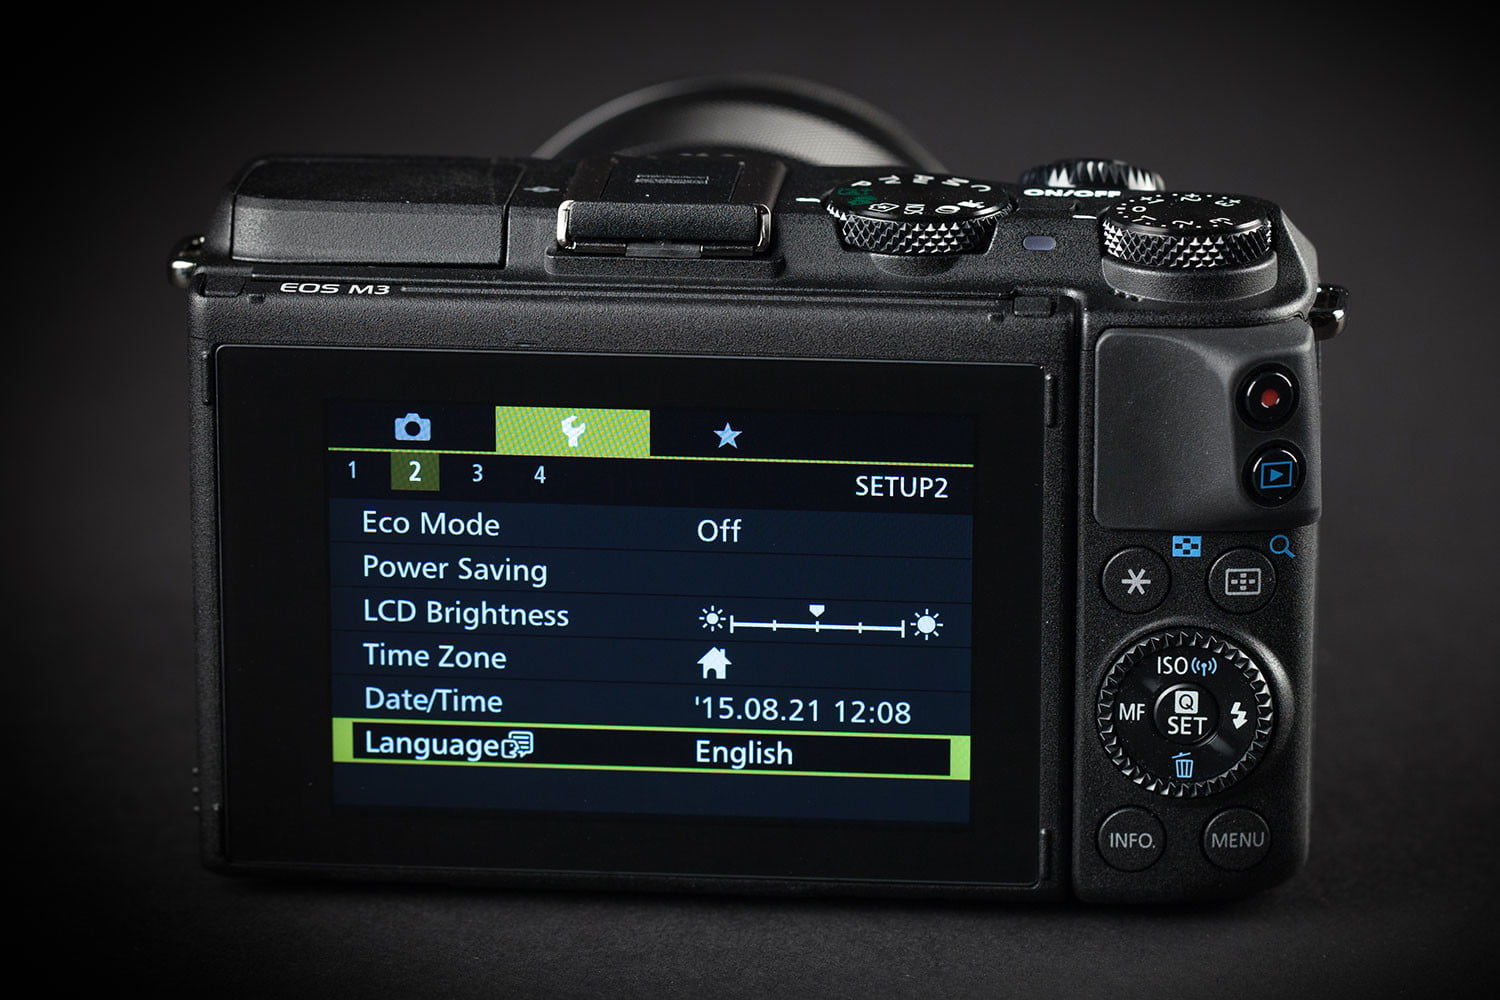 Canon Eos M3 Review Digital Trends M10 Kit 15 45 22mm 6399